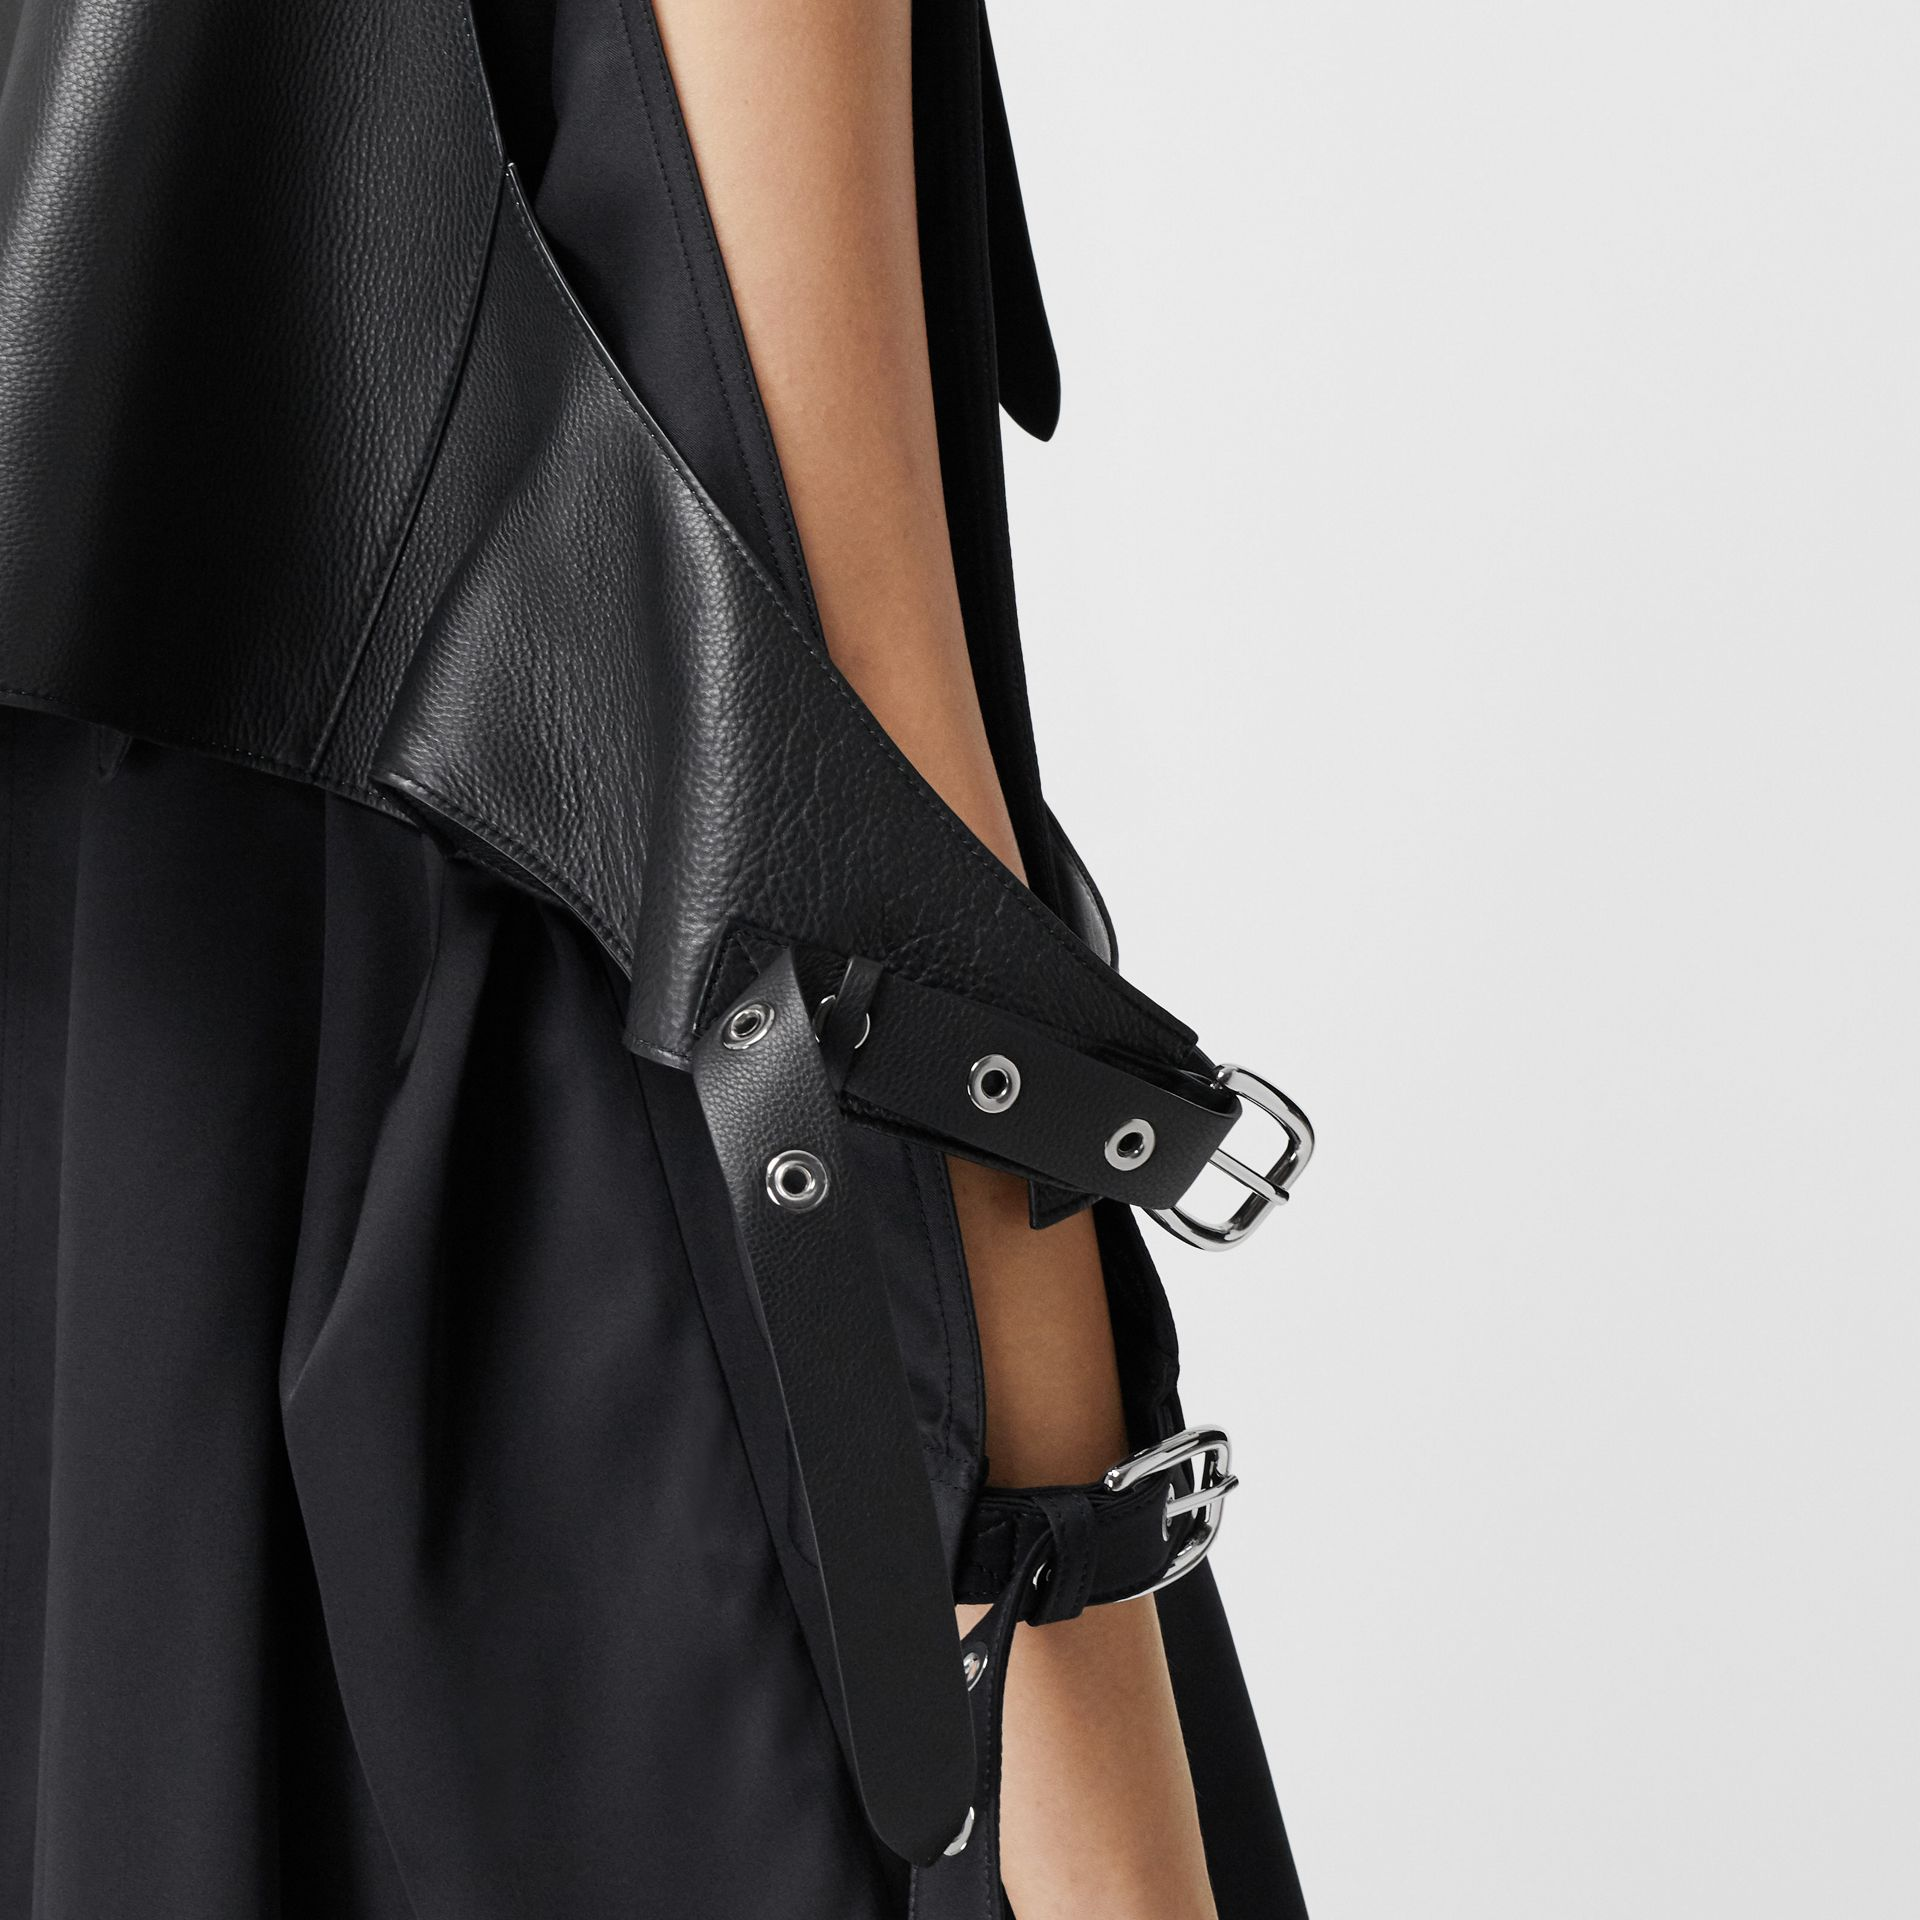 Buckle Detail Leather Waistcoat in Black - Women | Burberry United Kingdom - gallery image 4